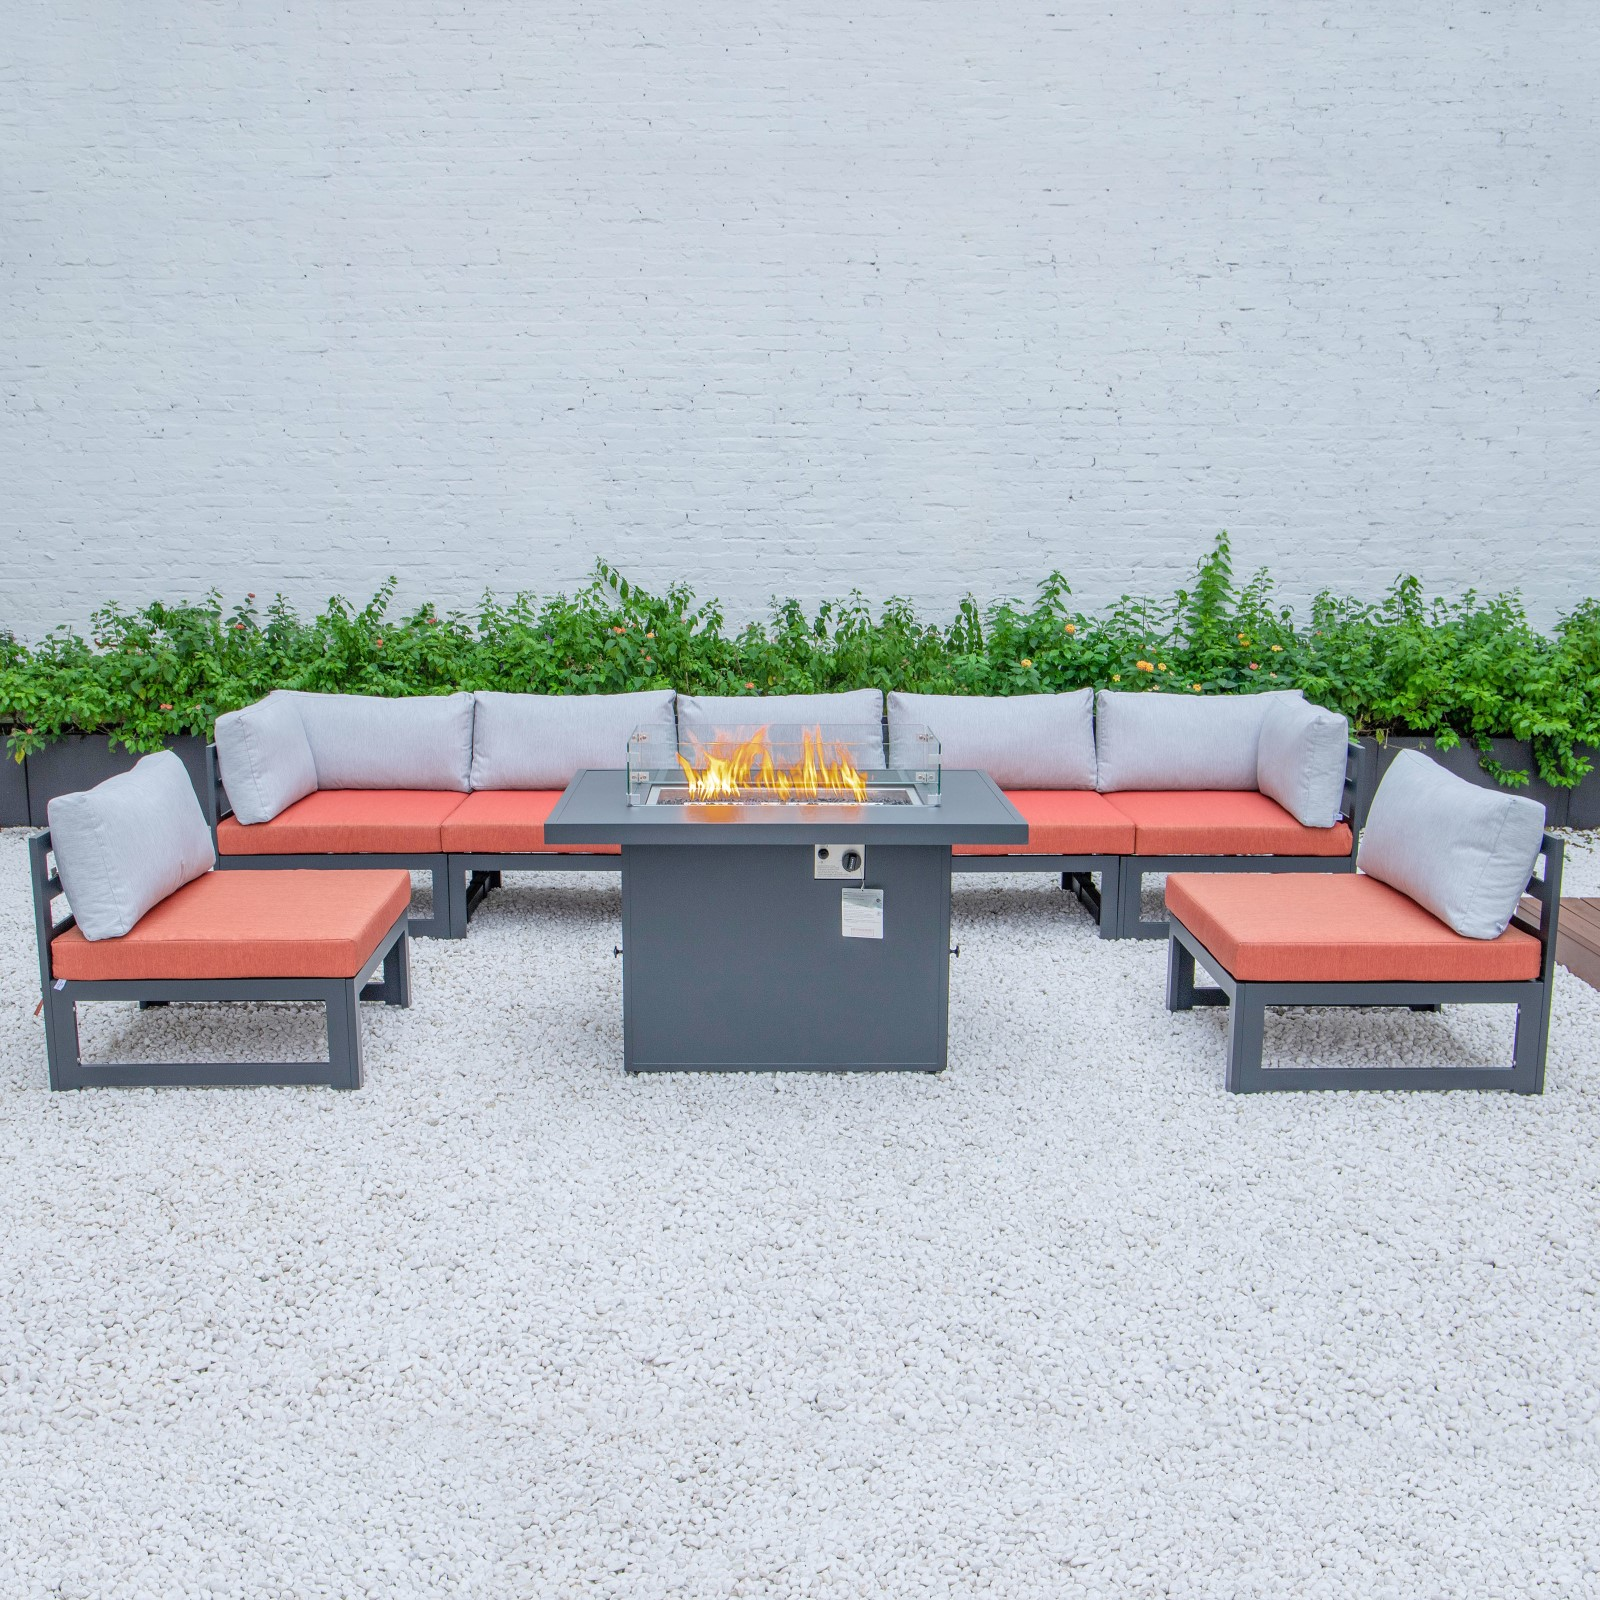 Image of: Patio Outdoor Sofa Outdoor Rattan Sofa Wicker Sofa Sets With Firepit Table Buy Outdoor Rattan Sofa Set Outdoor Rattan Sofa With Firepit Patio Sofa Set With Firepit Table Product On Alibaba Com